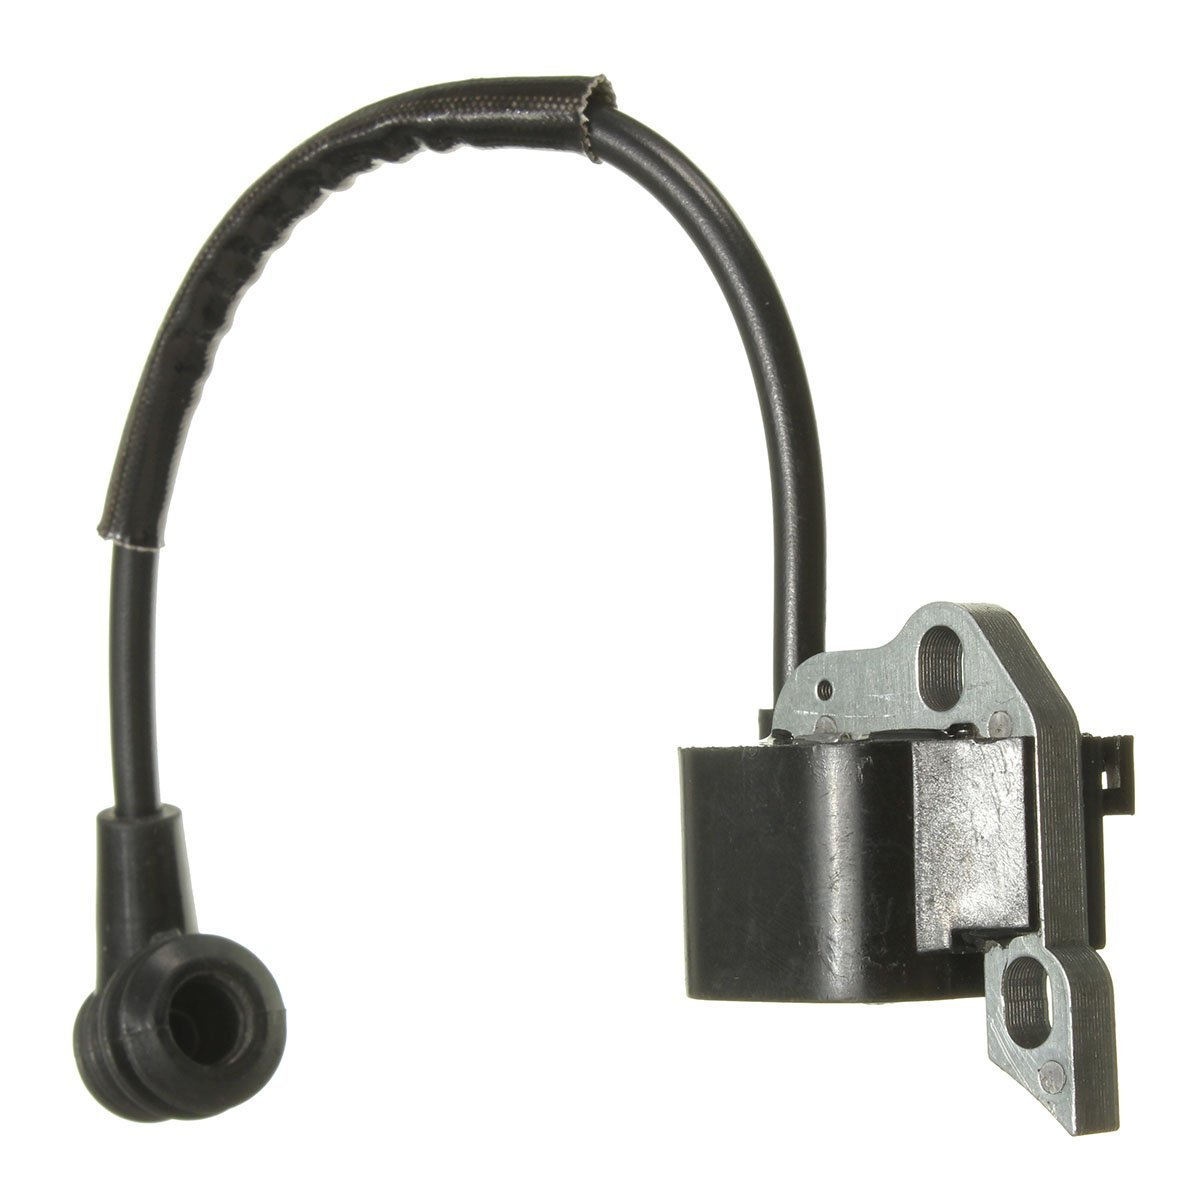 Ignition Coil - SODIAL(R) Ignition Coil Module for Stihl MS210 021 MS230 023 MS250 025 Replace#00004001306 060681